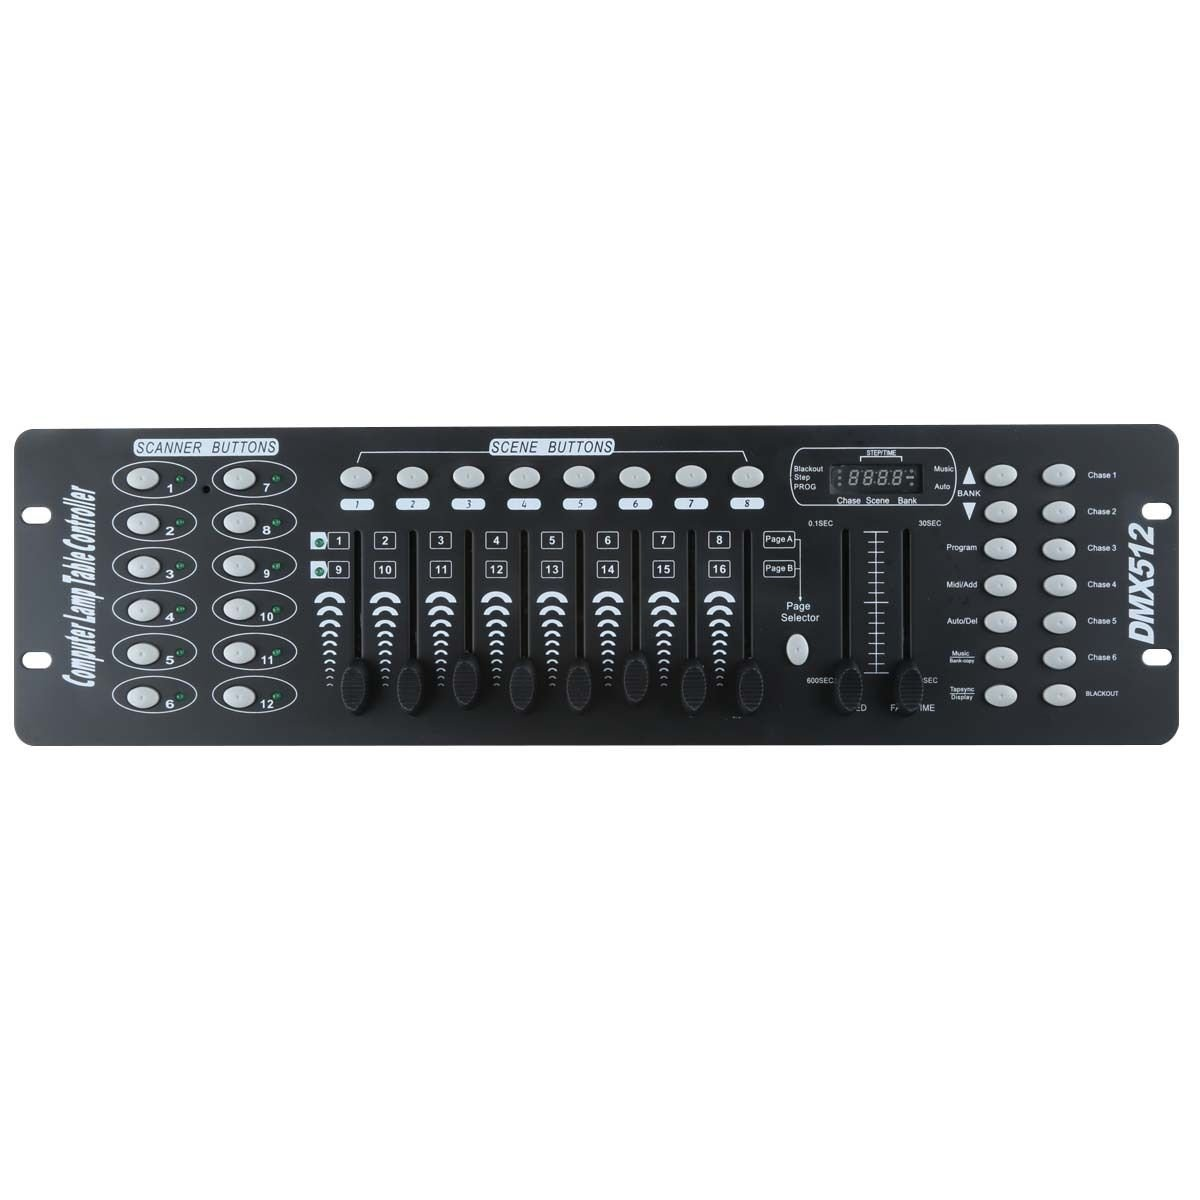 Amazon.com: Tengchang DMX 512 Controller 192 Channel Operator Console For  Stage Party DJ Lighting: Musical Instruments